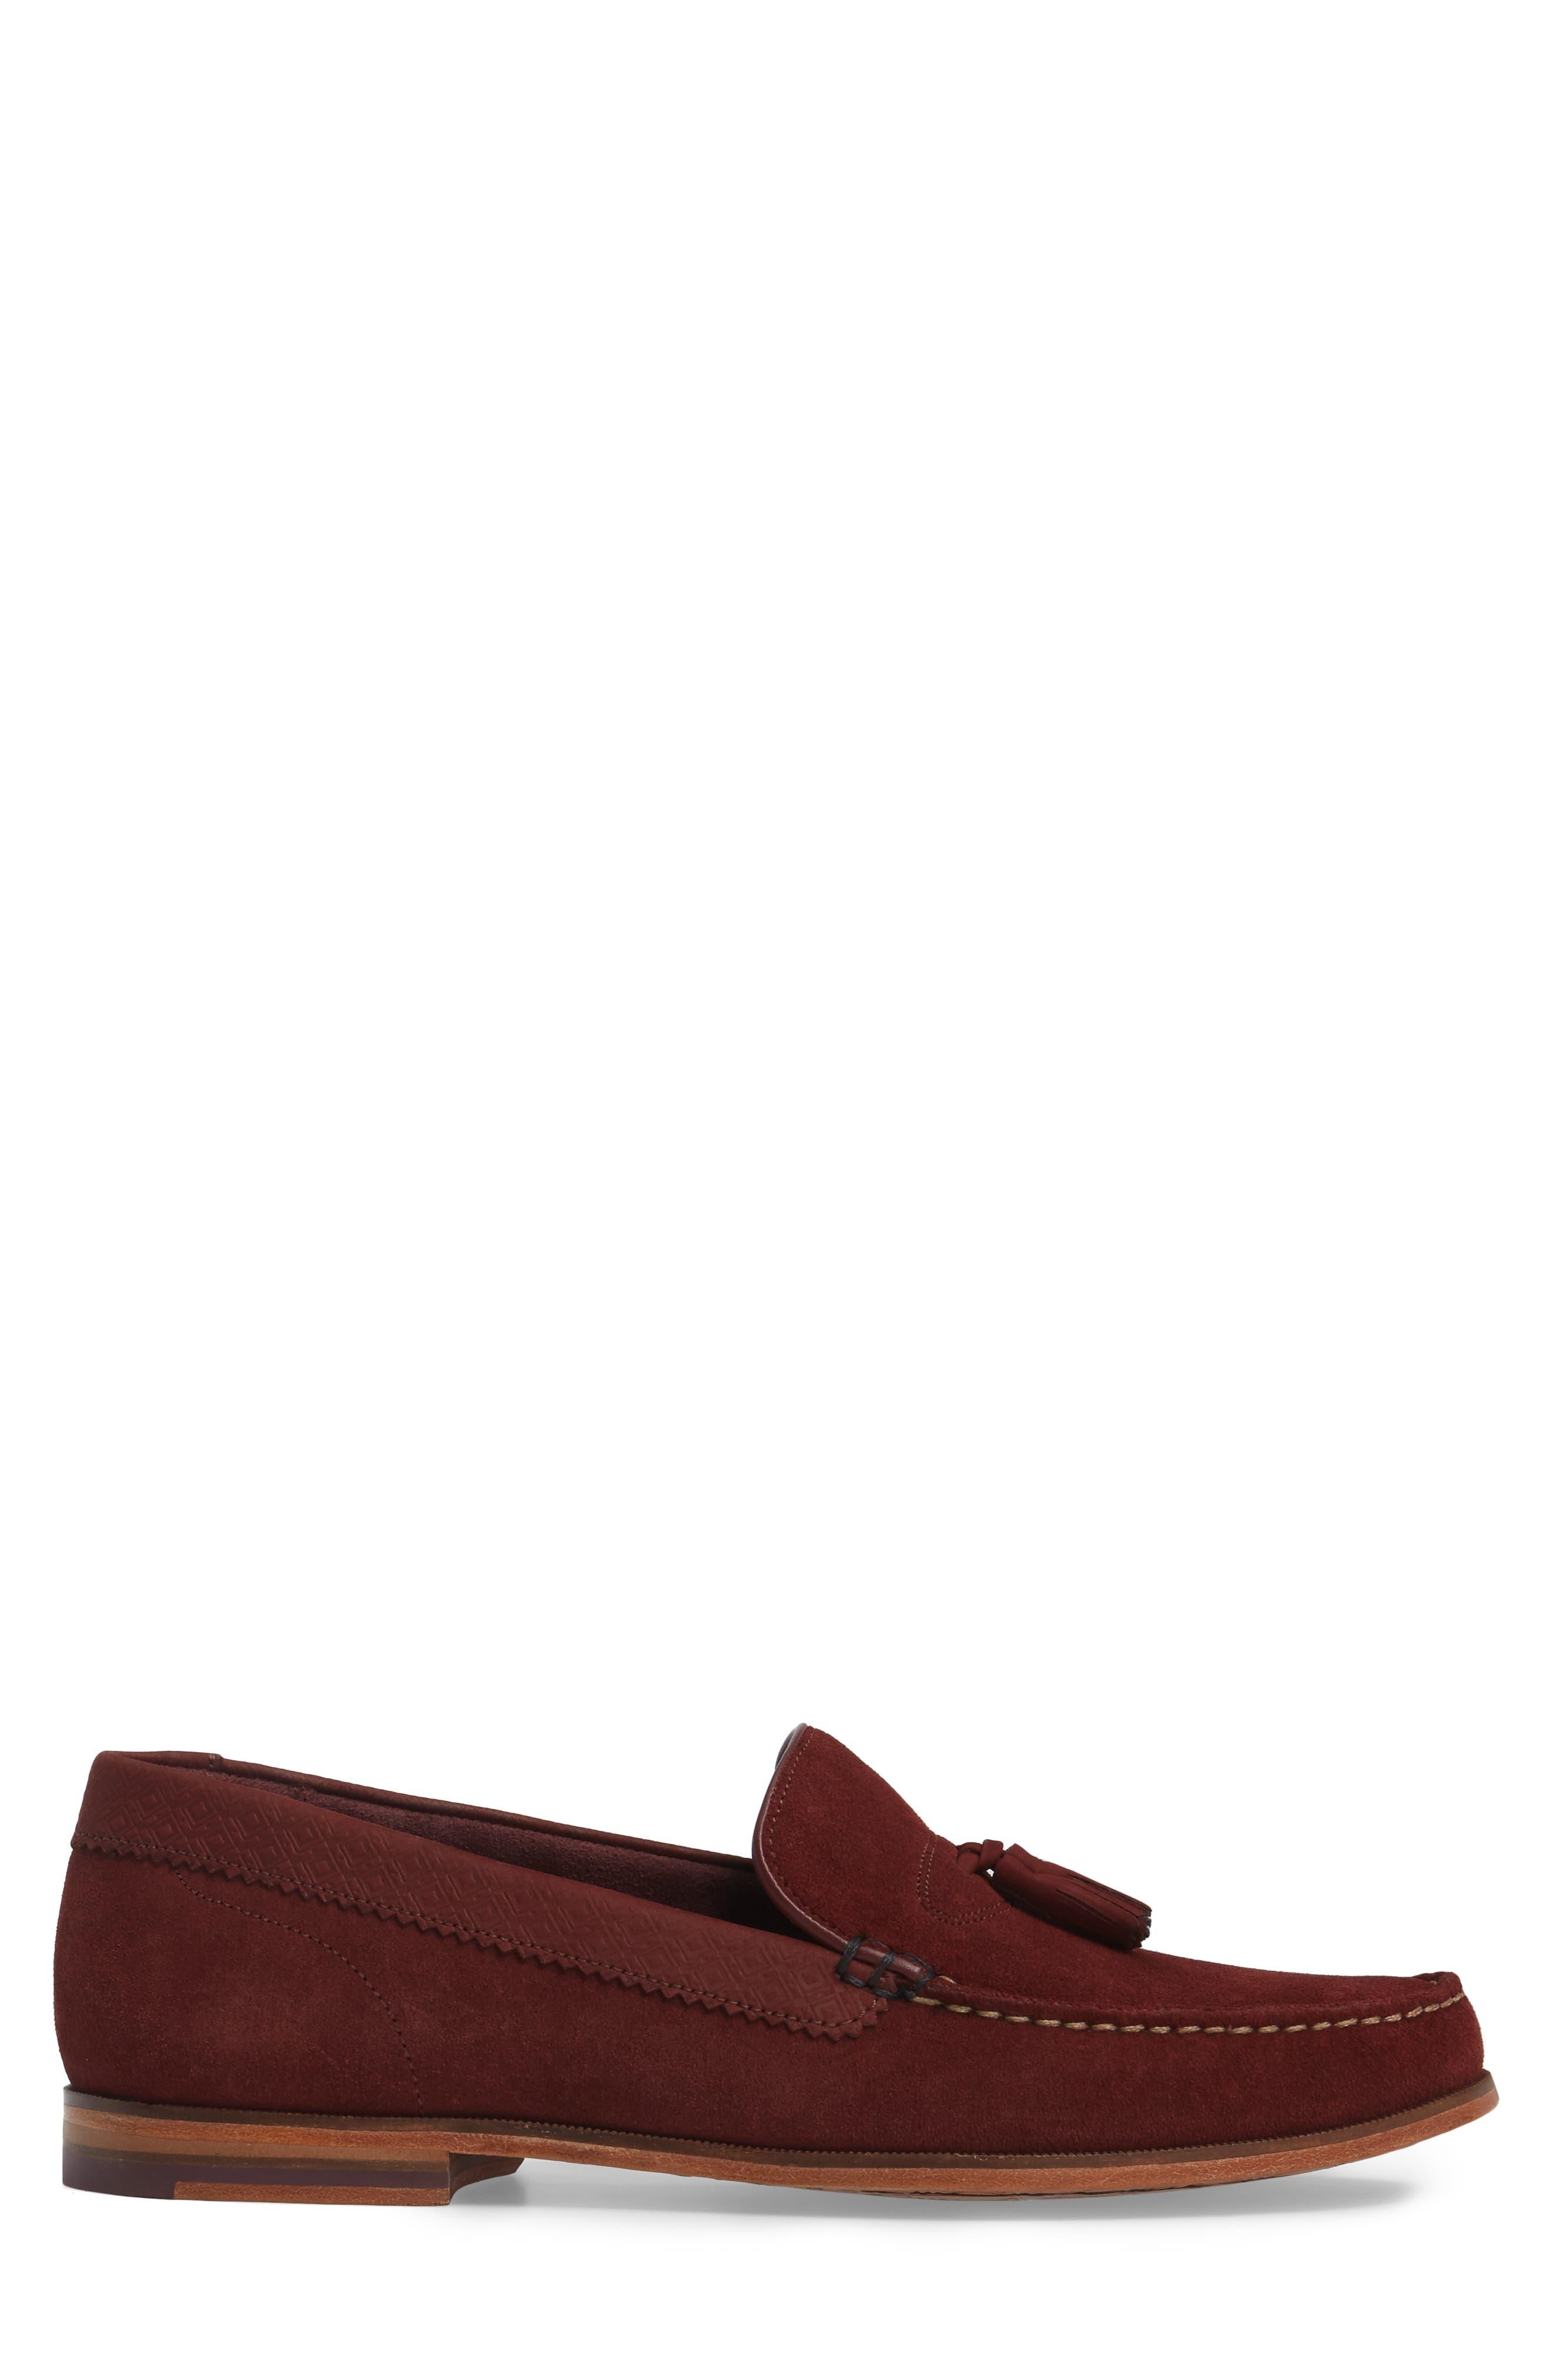 Dougge Tassel Loafer,                             Alternate thumbnail 17, color,